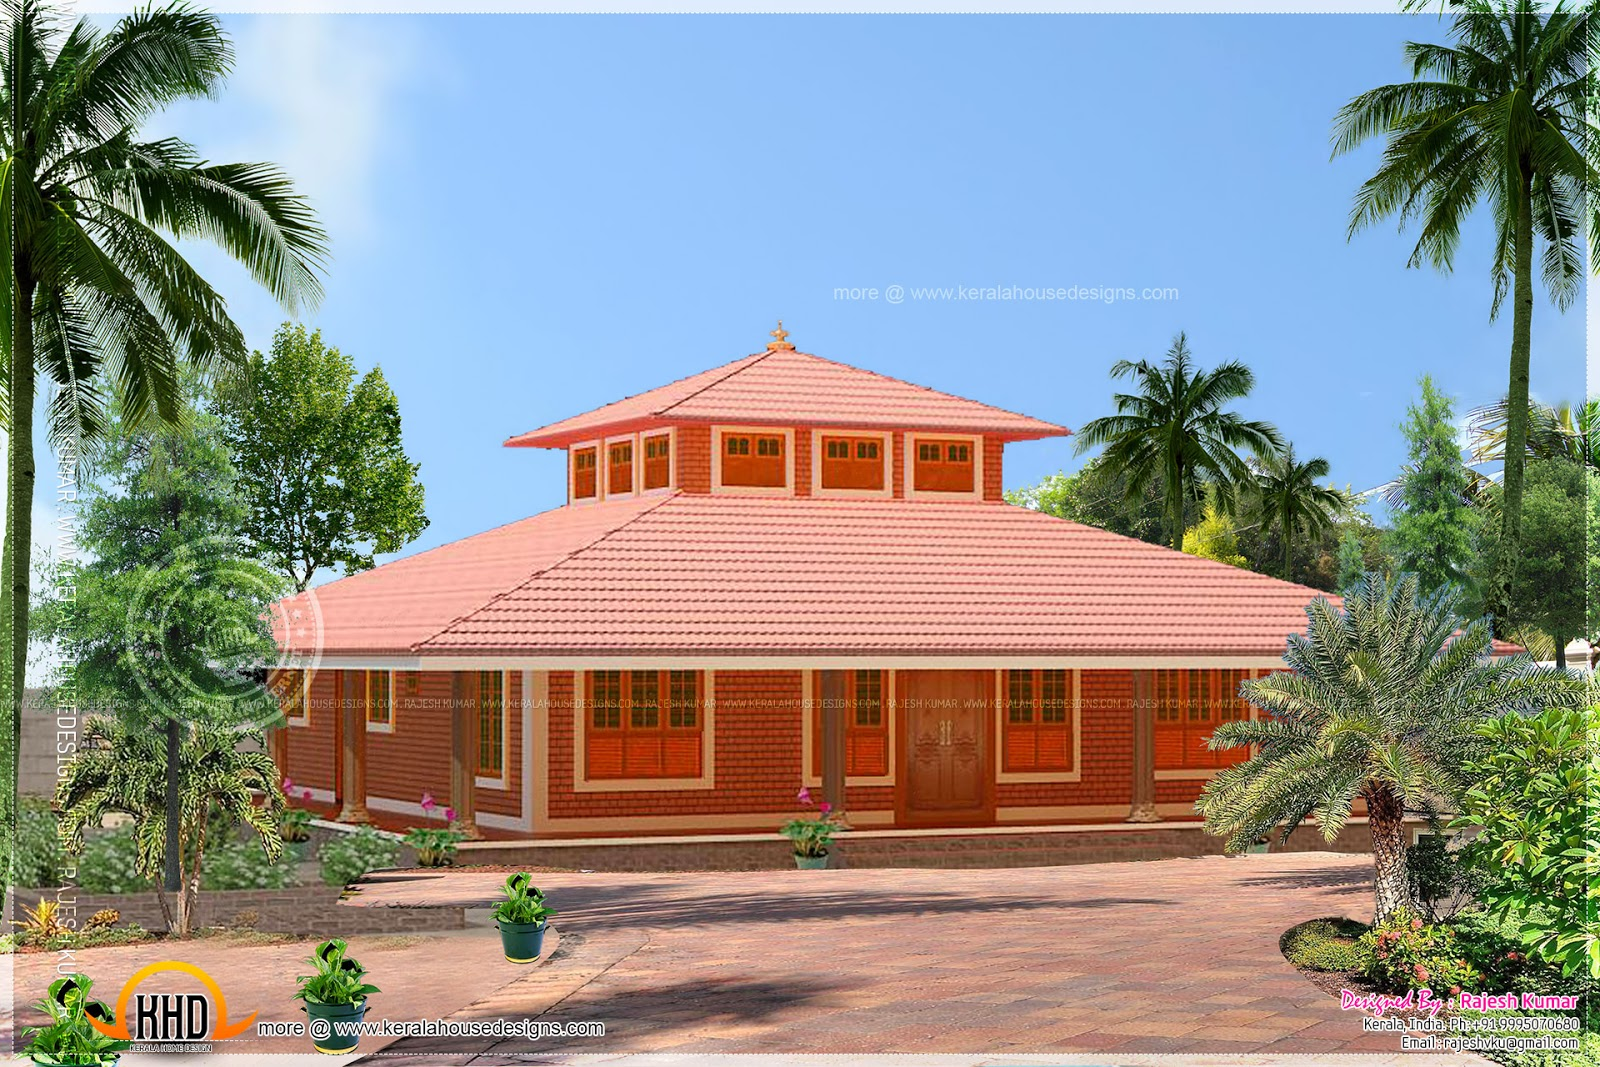 Single storied low cost brick home design kerala home for Low cost house plans with photos in kerala